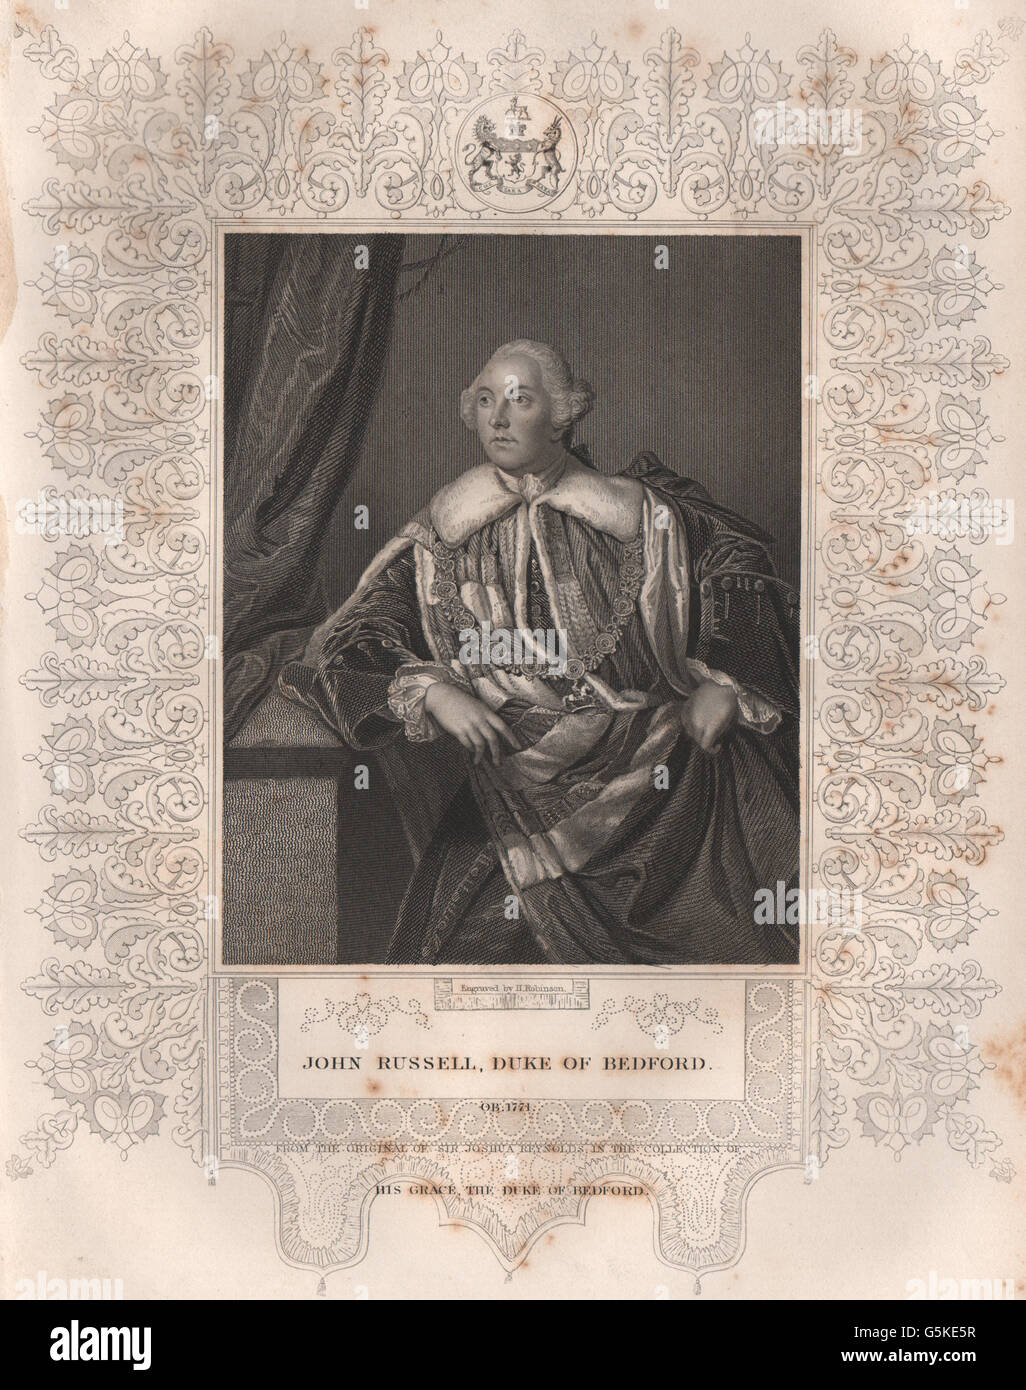 BRITISH HISTORY: John Russell, Duke Of Bedford. TALLIS, antique print 1853 - Stock Image